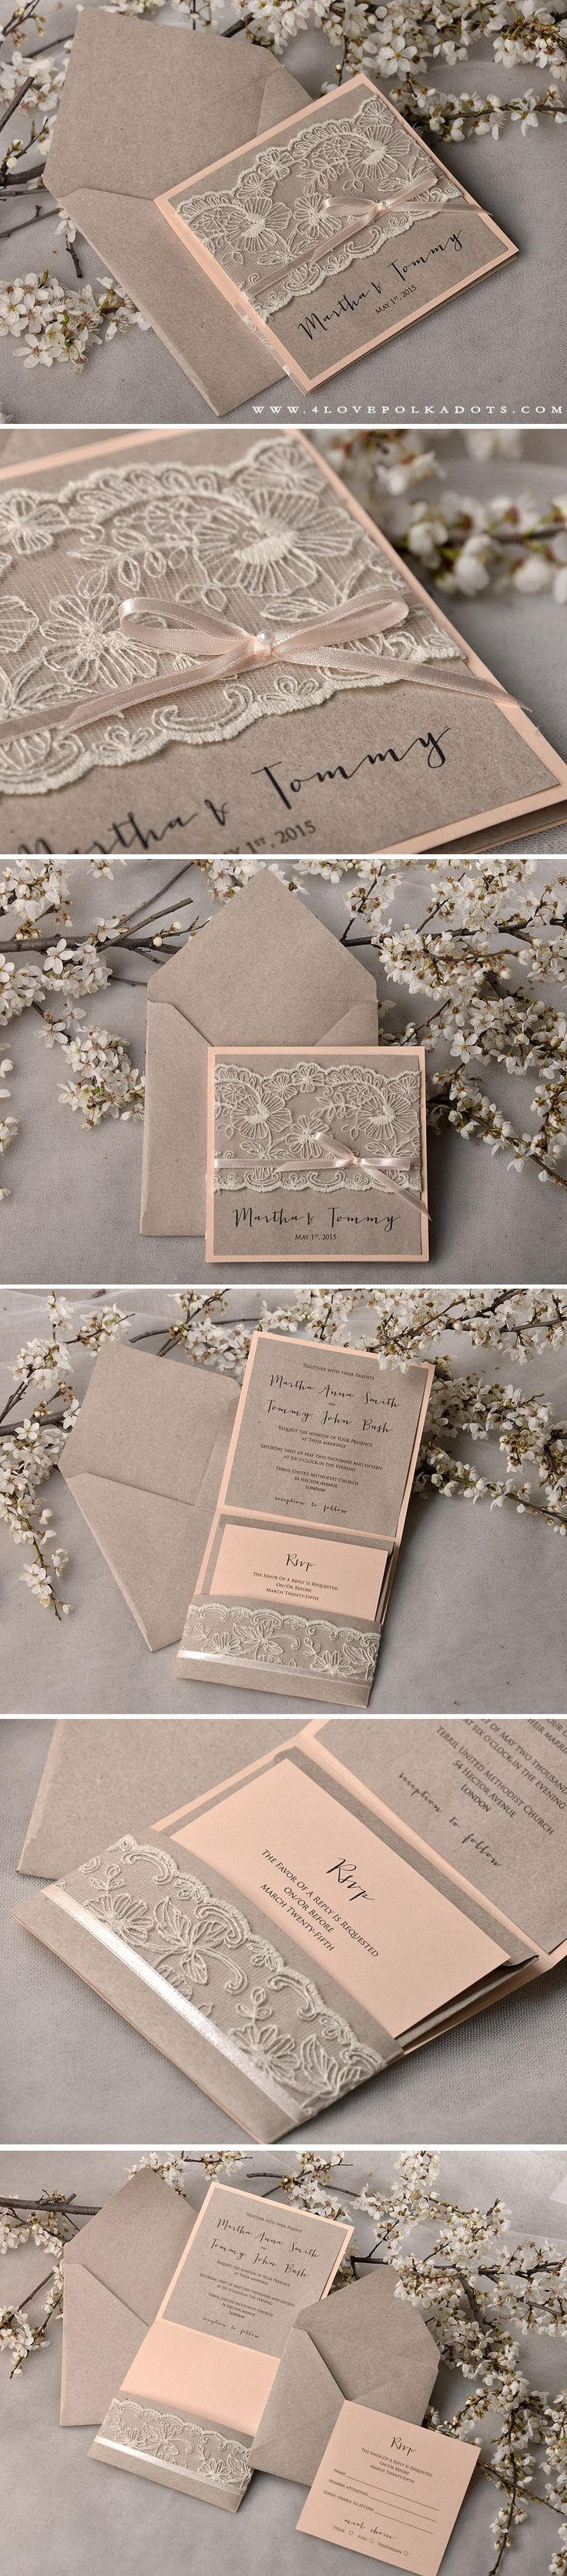 Peach & Eco Lace Wedding Invitations #handmade #summerwedding #weddingideas (Top Design Wedding Invitations)